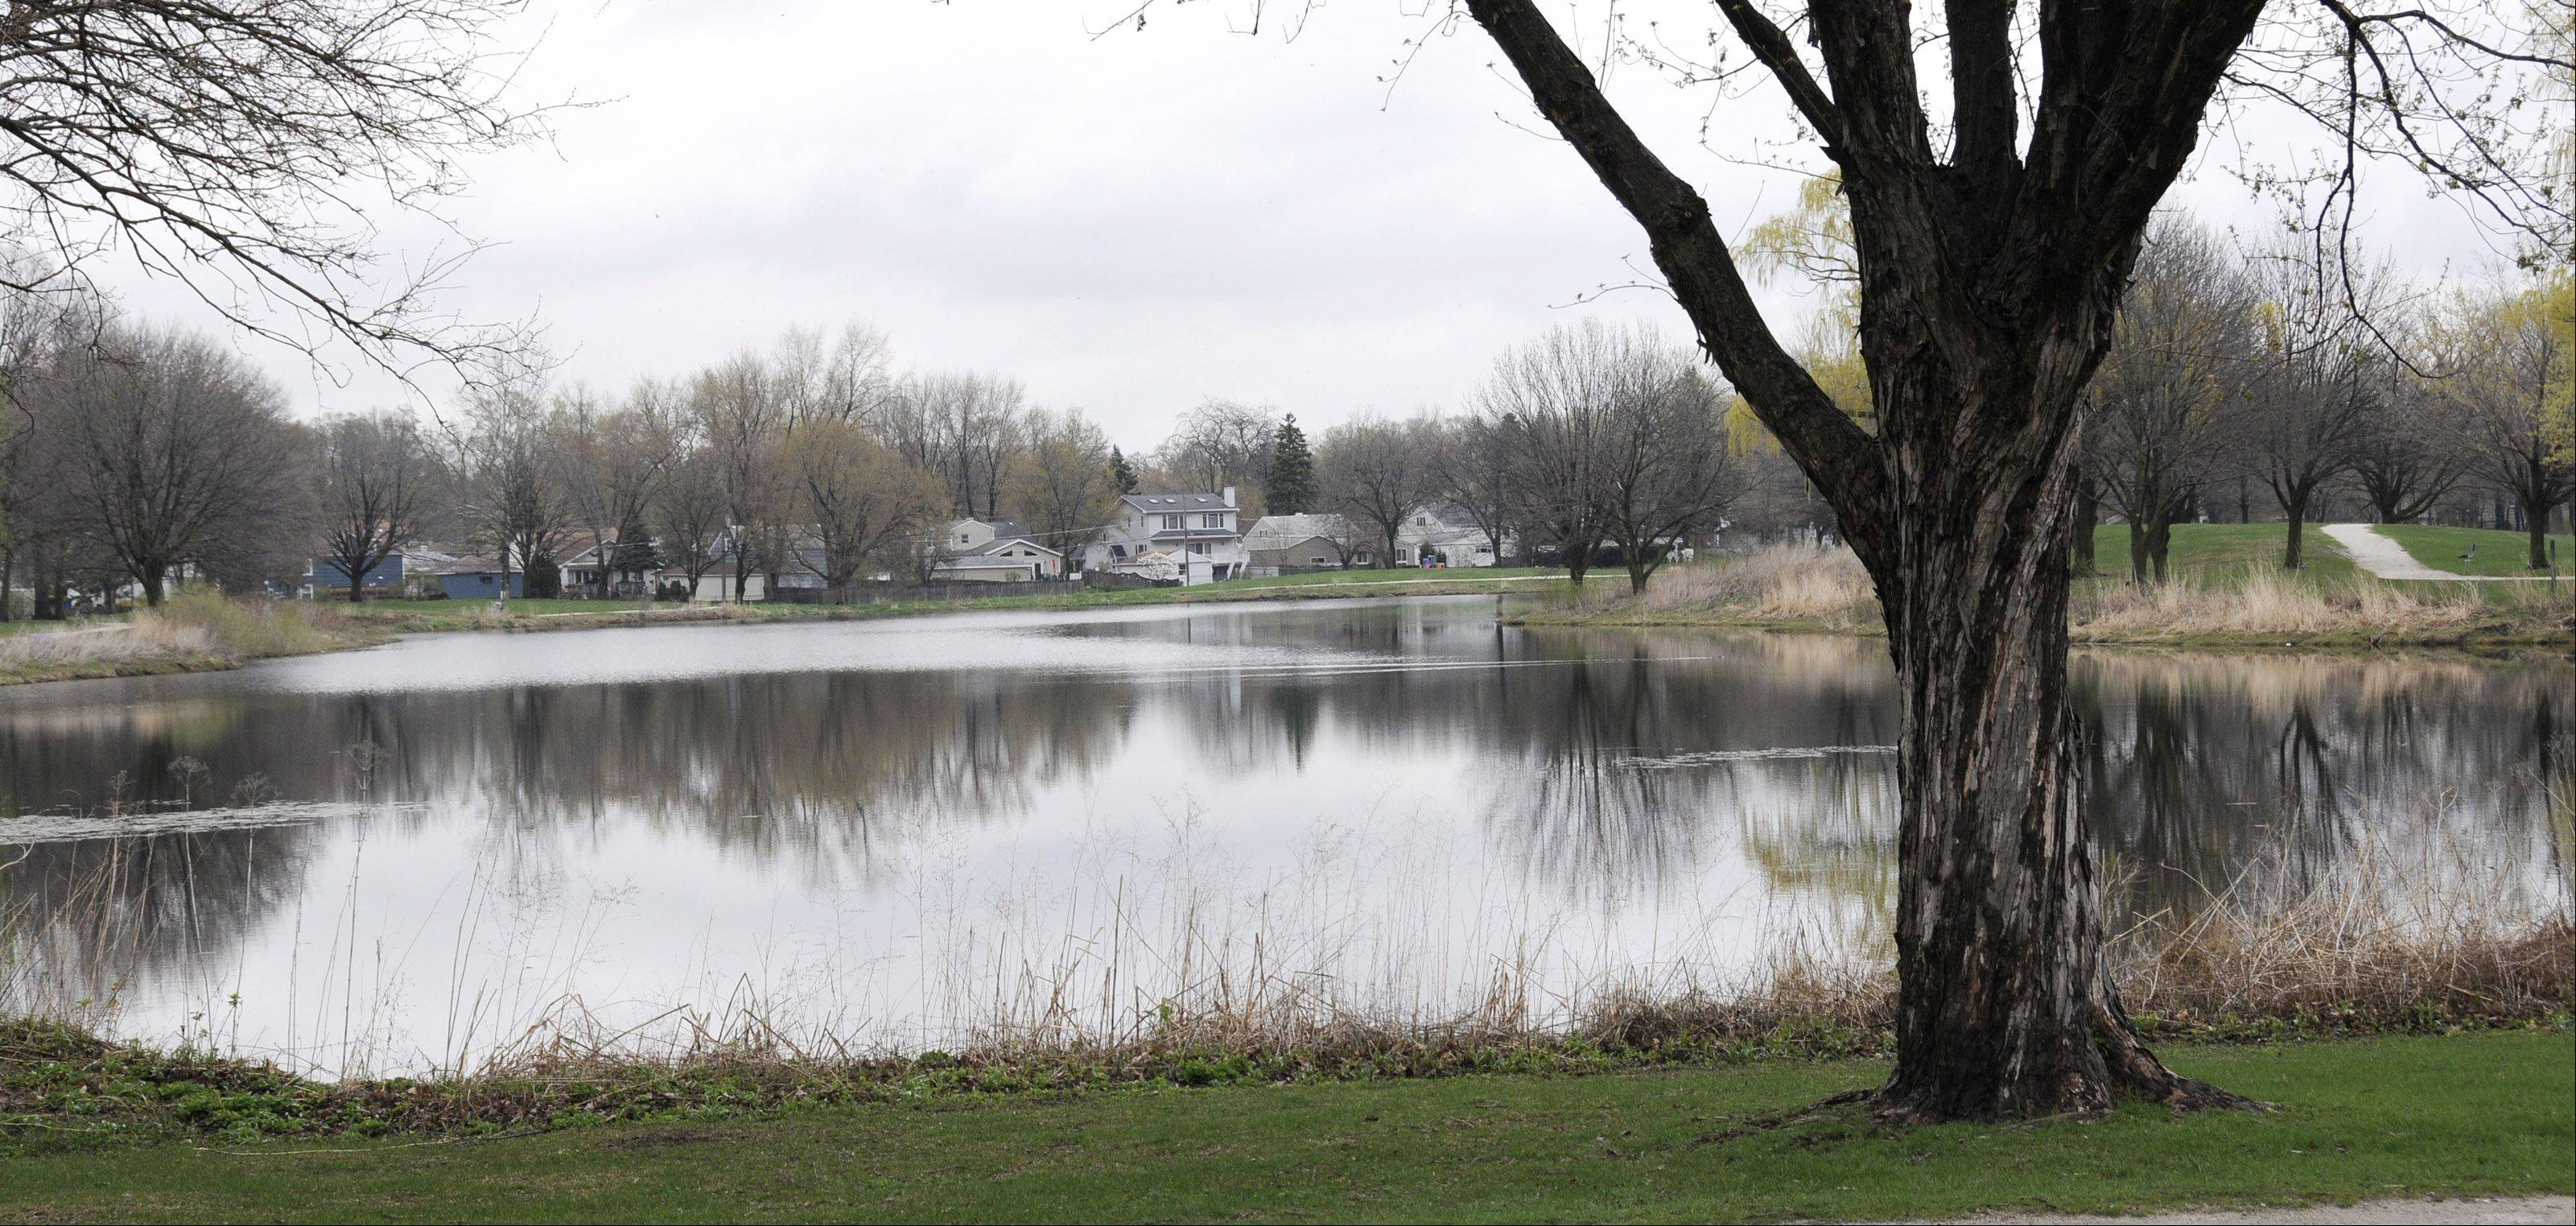 It's been more than a year since Terrace View Pond and the Lombard neighborhoods surrounding it experienced flooding problems after heavy downpours. A study of how to improve stormwater management at the site is expected to be complete in September.